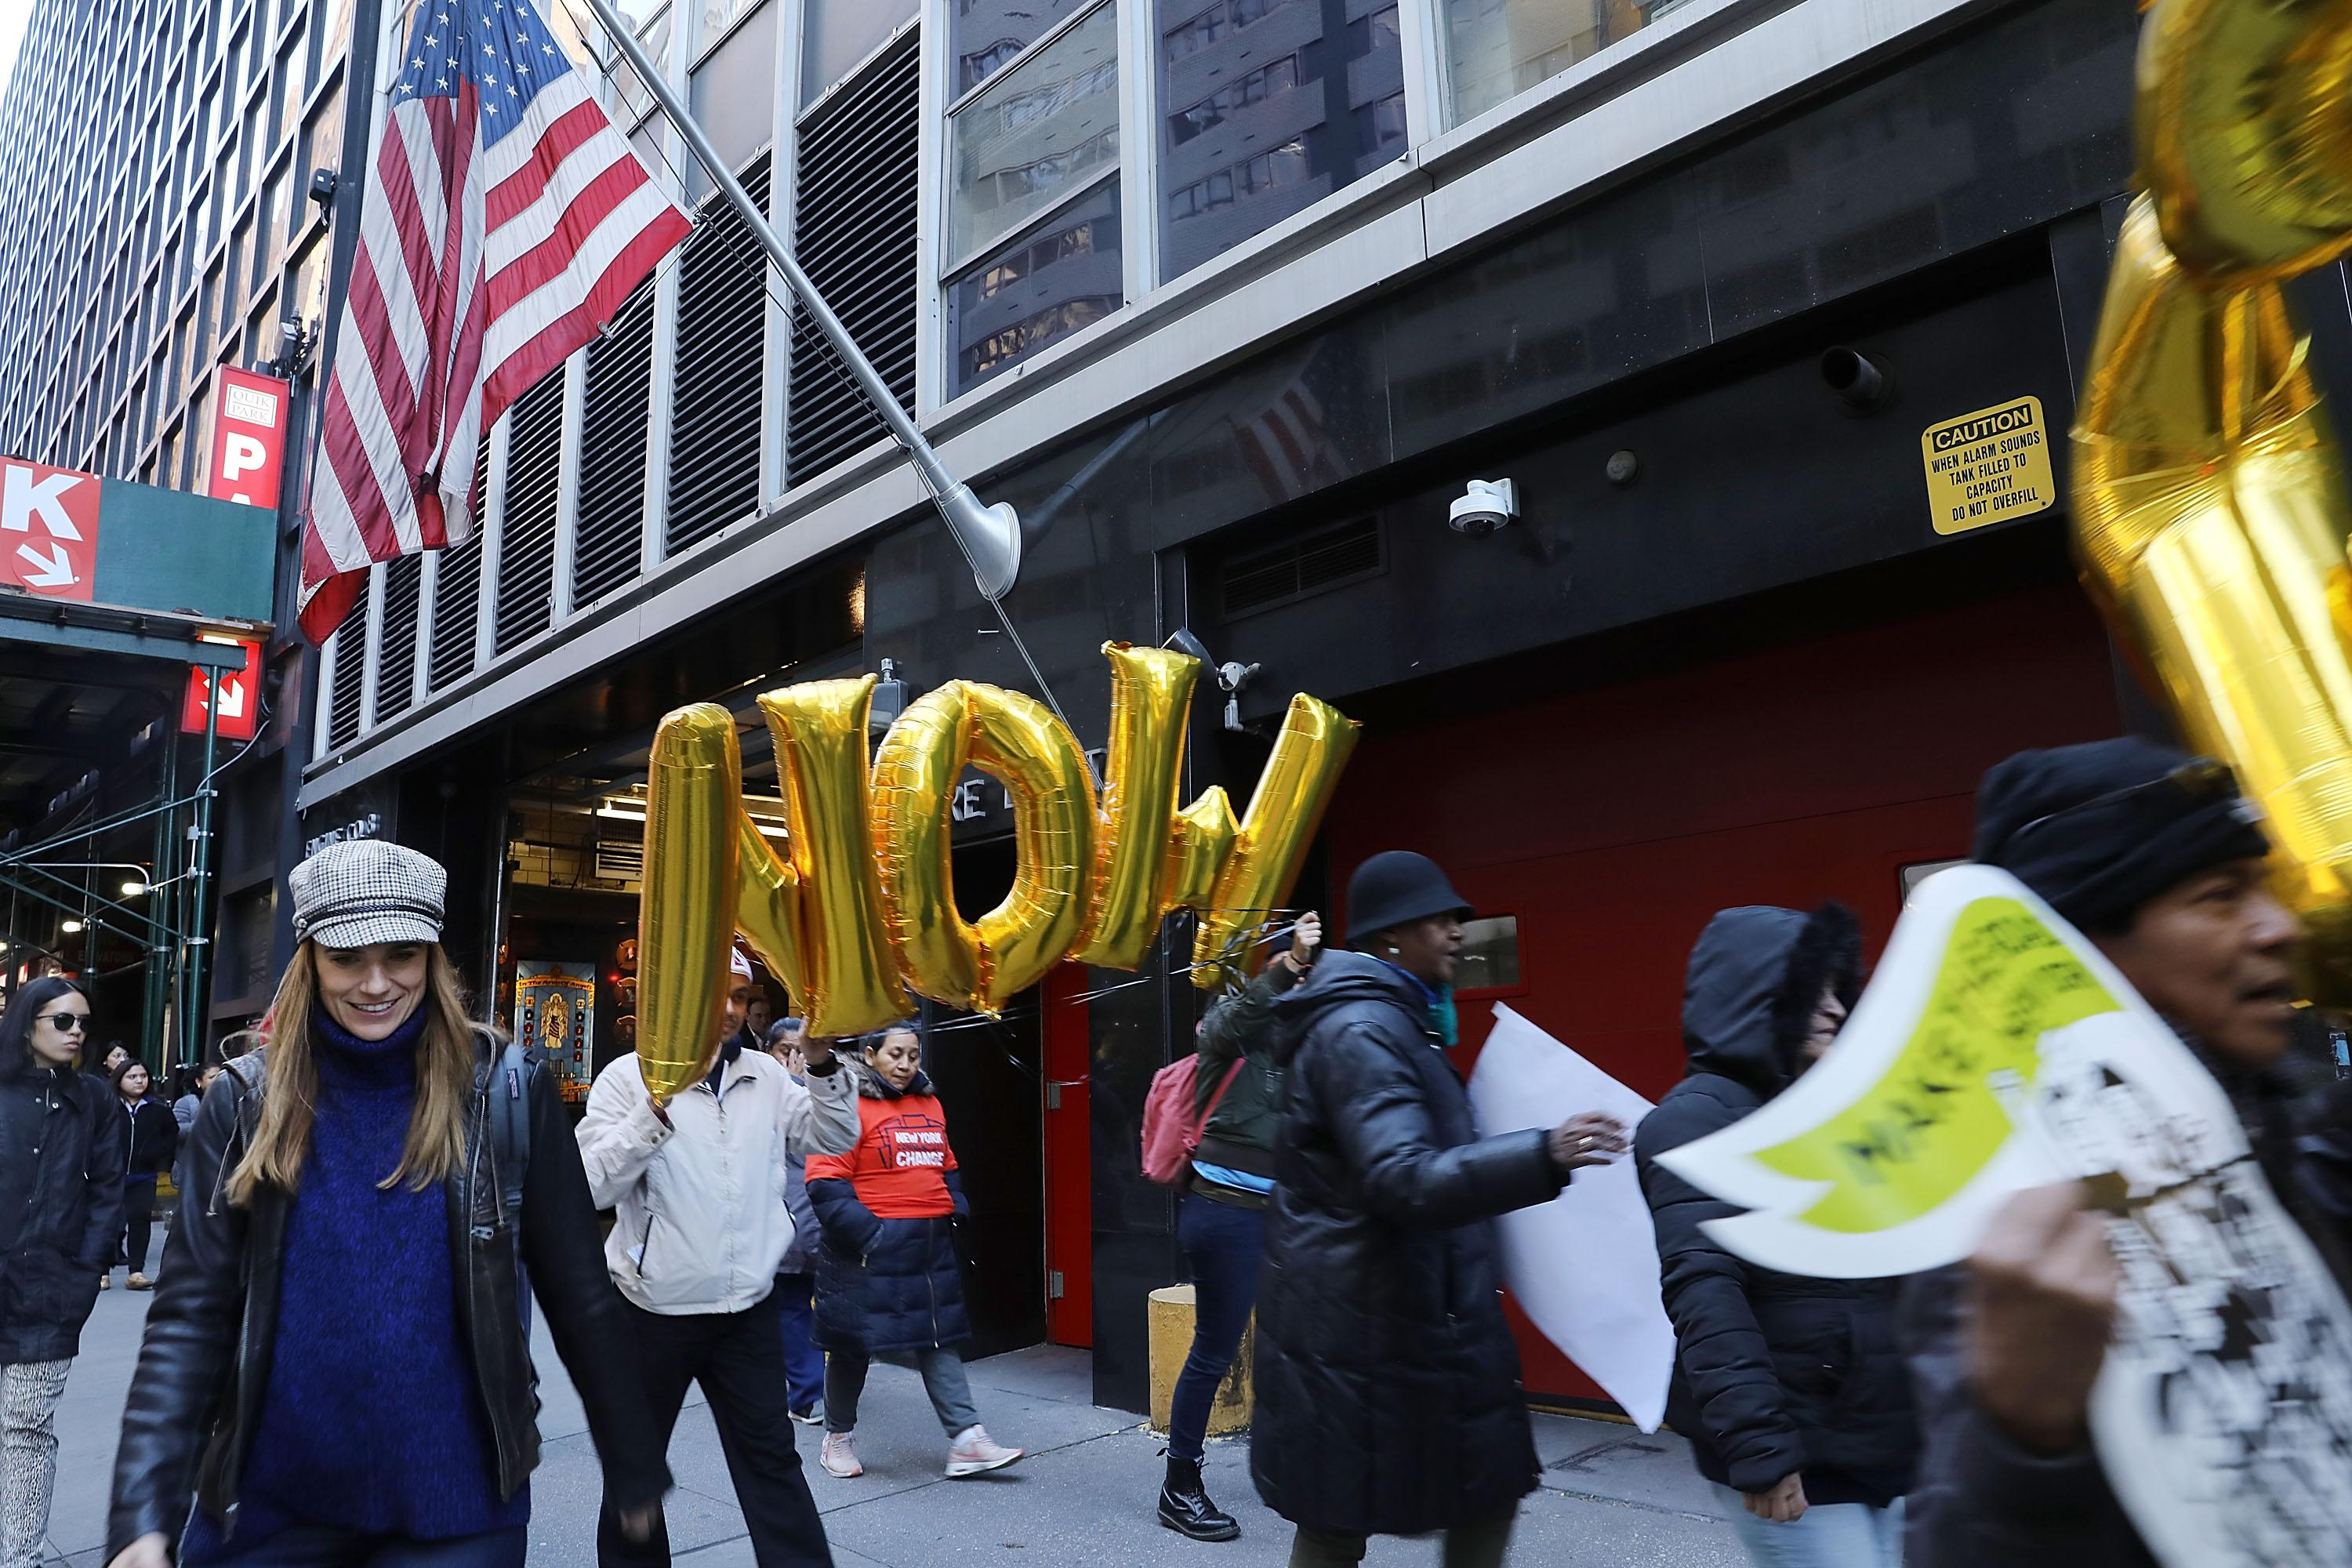 Activists participate in a march and rally outside of three financial companies in New York.